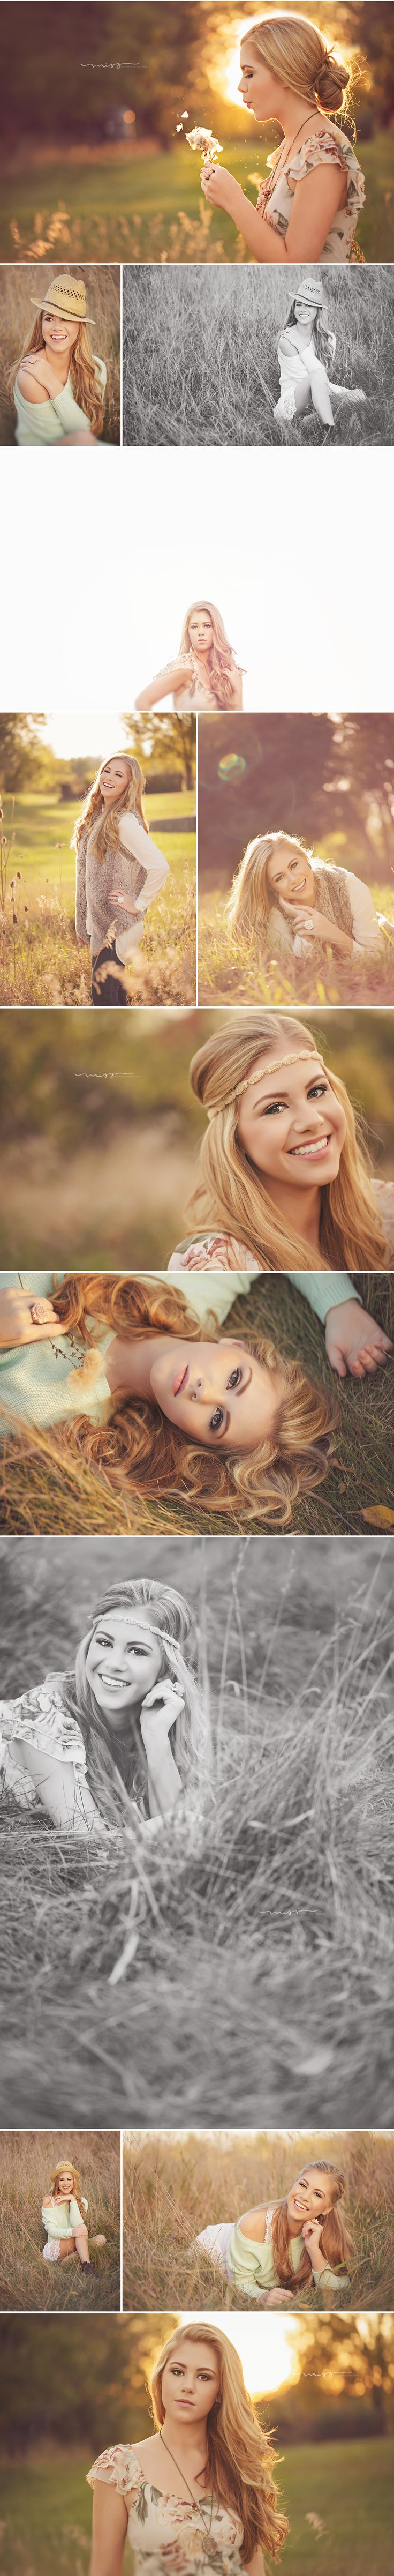 Gorgeous senior session Marissa McInnis | Michigan Senior Photographer